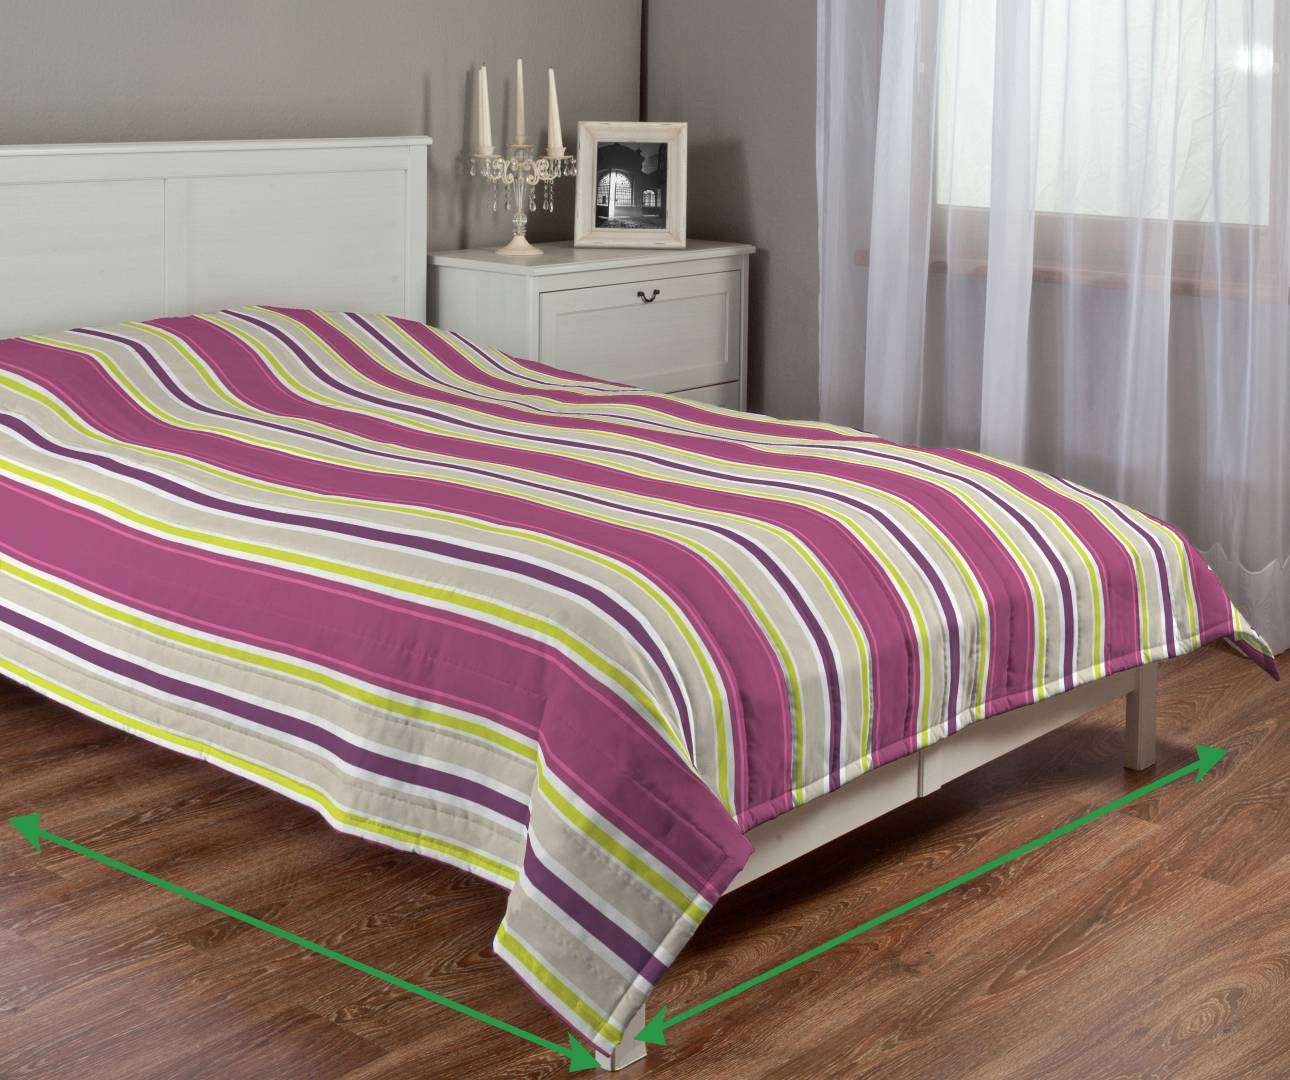 Quilted throw (vertical quilt pattern) in collection Fleur , fabric: 137-22